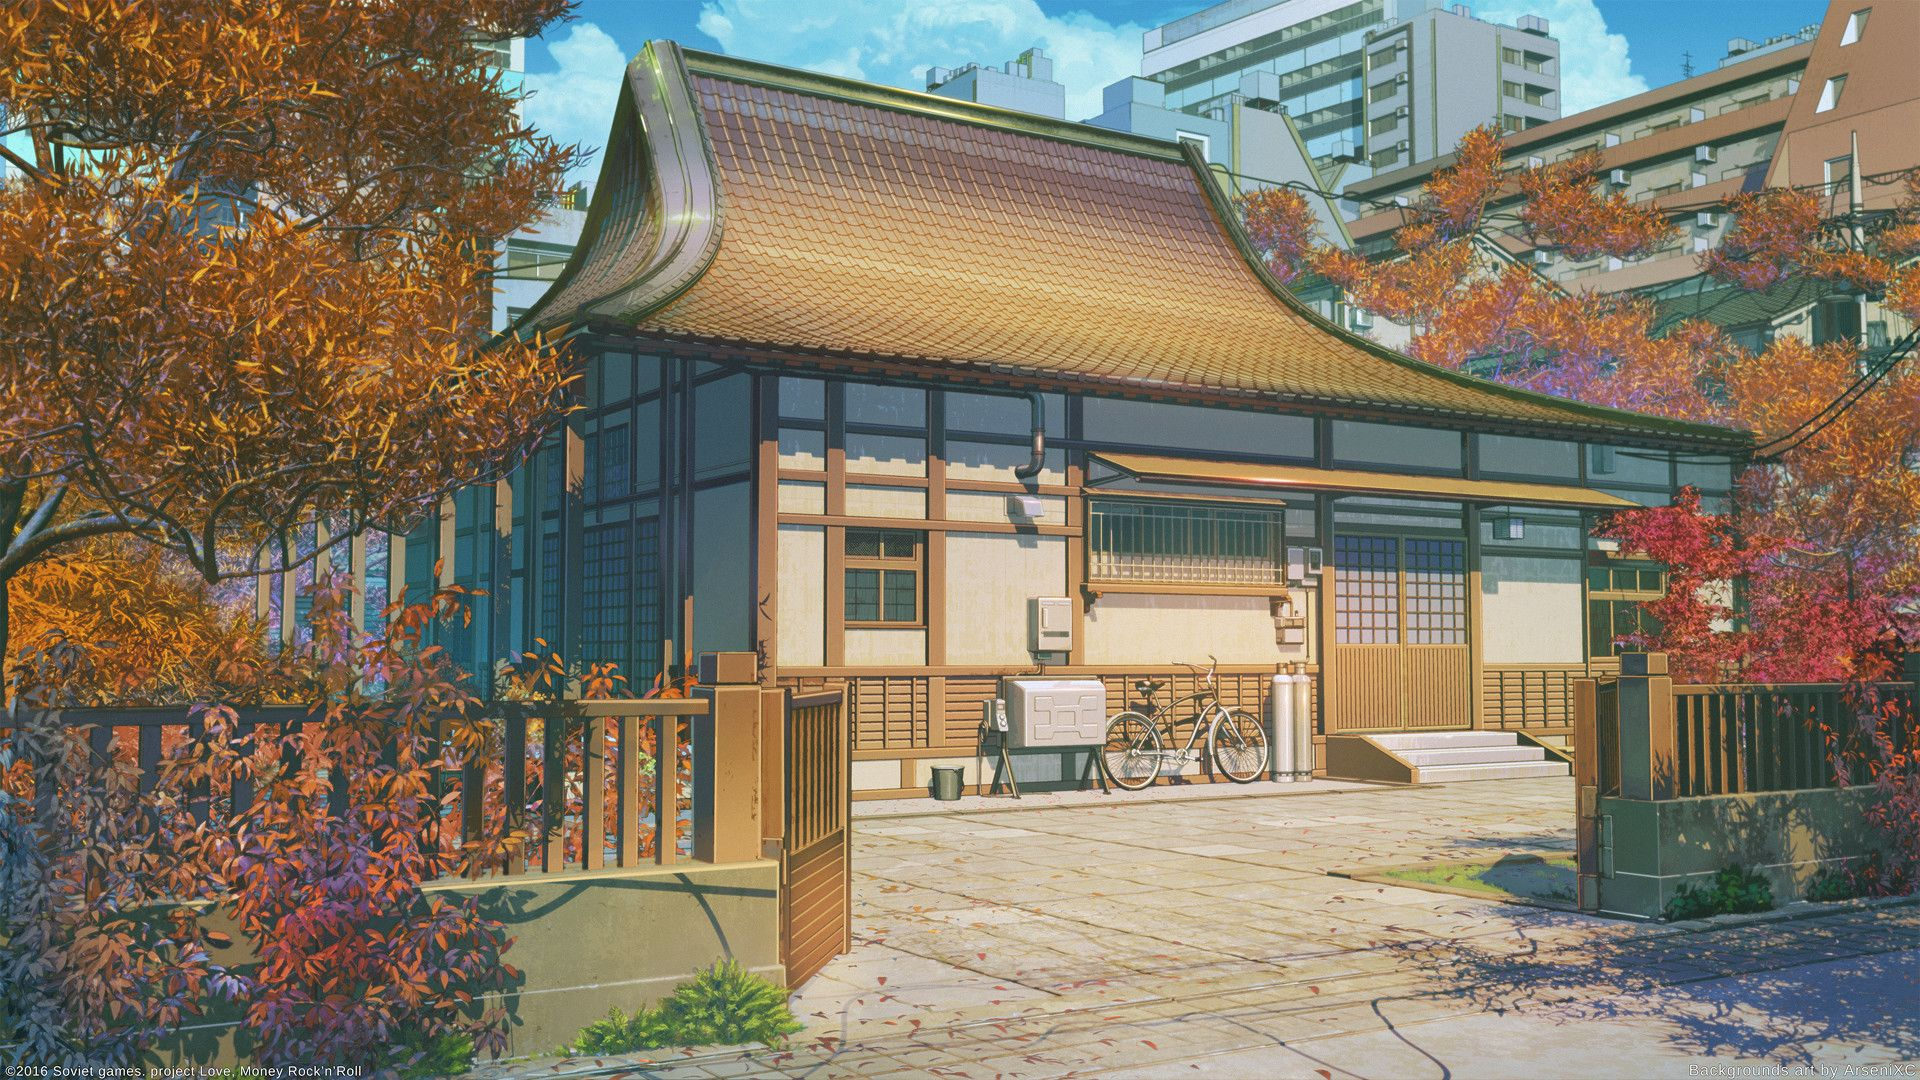 Anime Scenery Building Anime Background Anime Places Anime Scenery Wallpaper